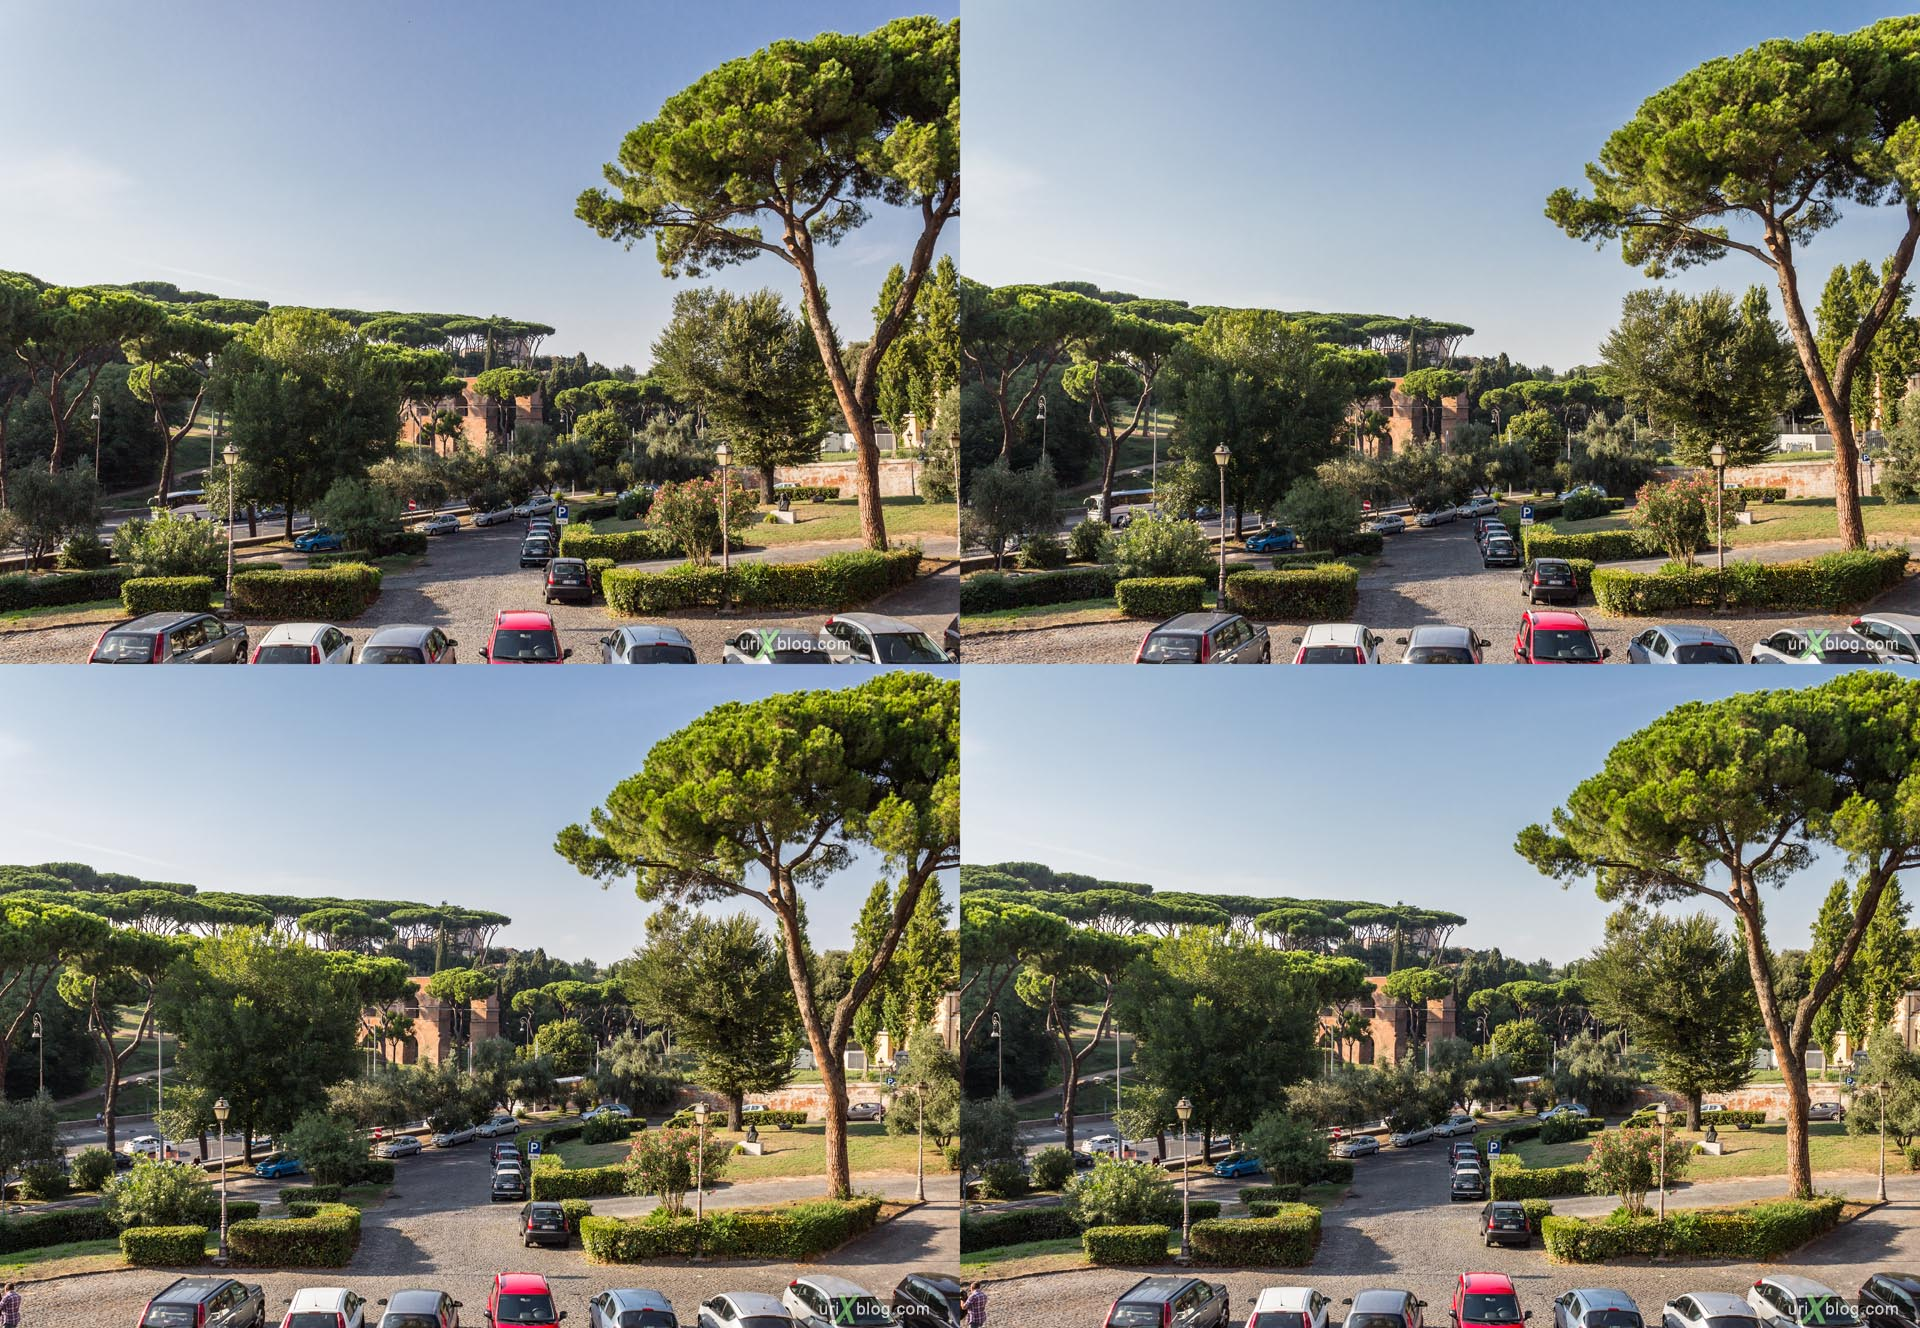 2012, Palatine hill, church, San Gregorio Magno al Celio, Rome, Italy, Europe, 3D, stereo pair, cross-eyed, crossview, cross view stereo pair